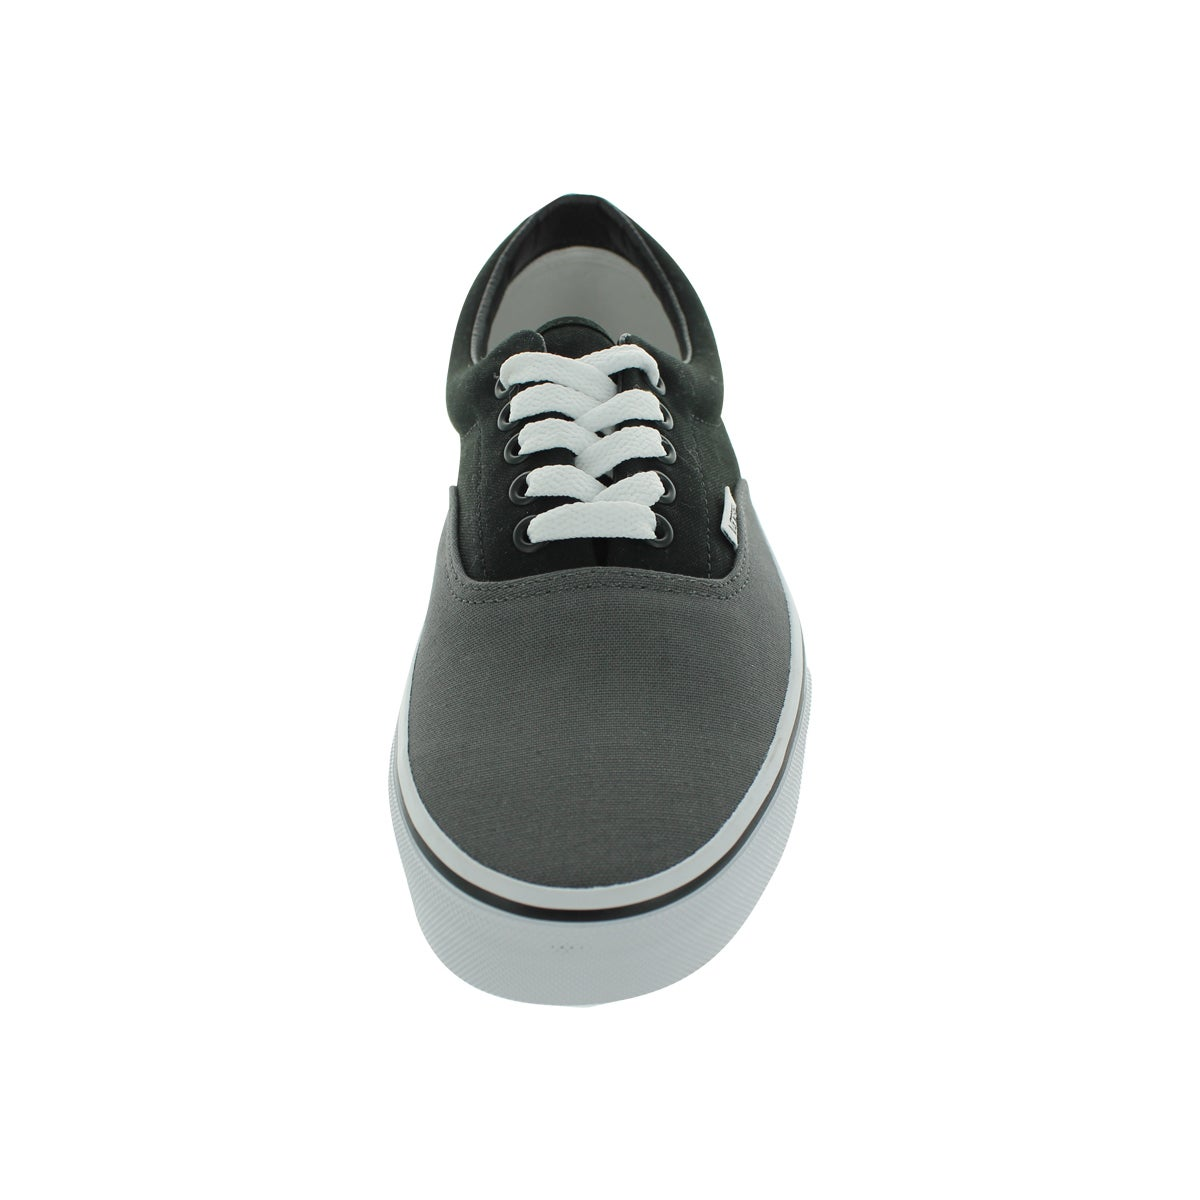 Shop Vans Era Skate Shoes (Pewter Black) - Free Shipping Today -  Overstock.com - 12328125 0fcf8aa5456b